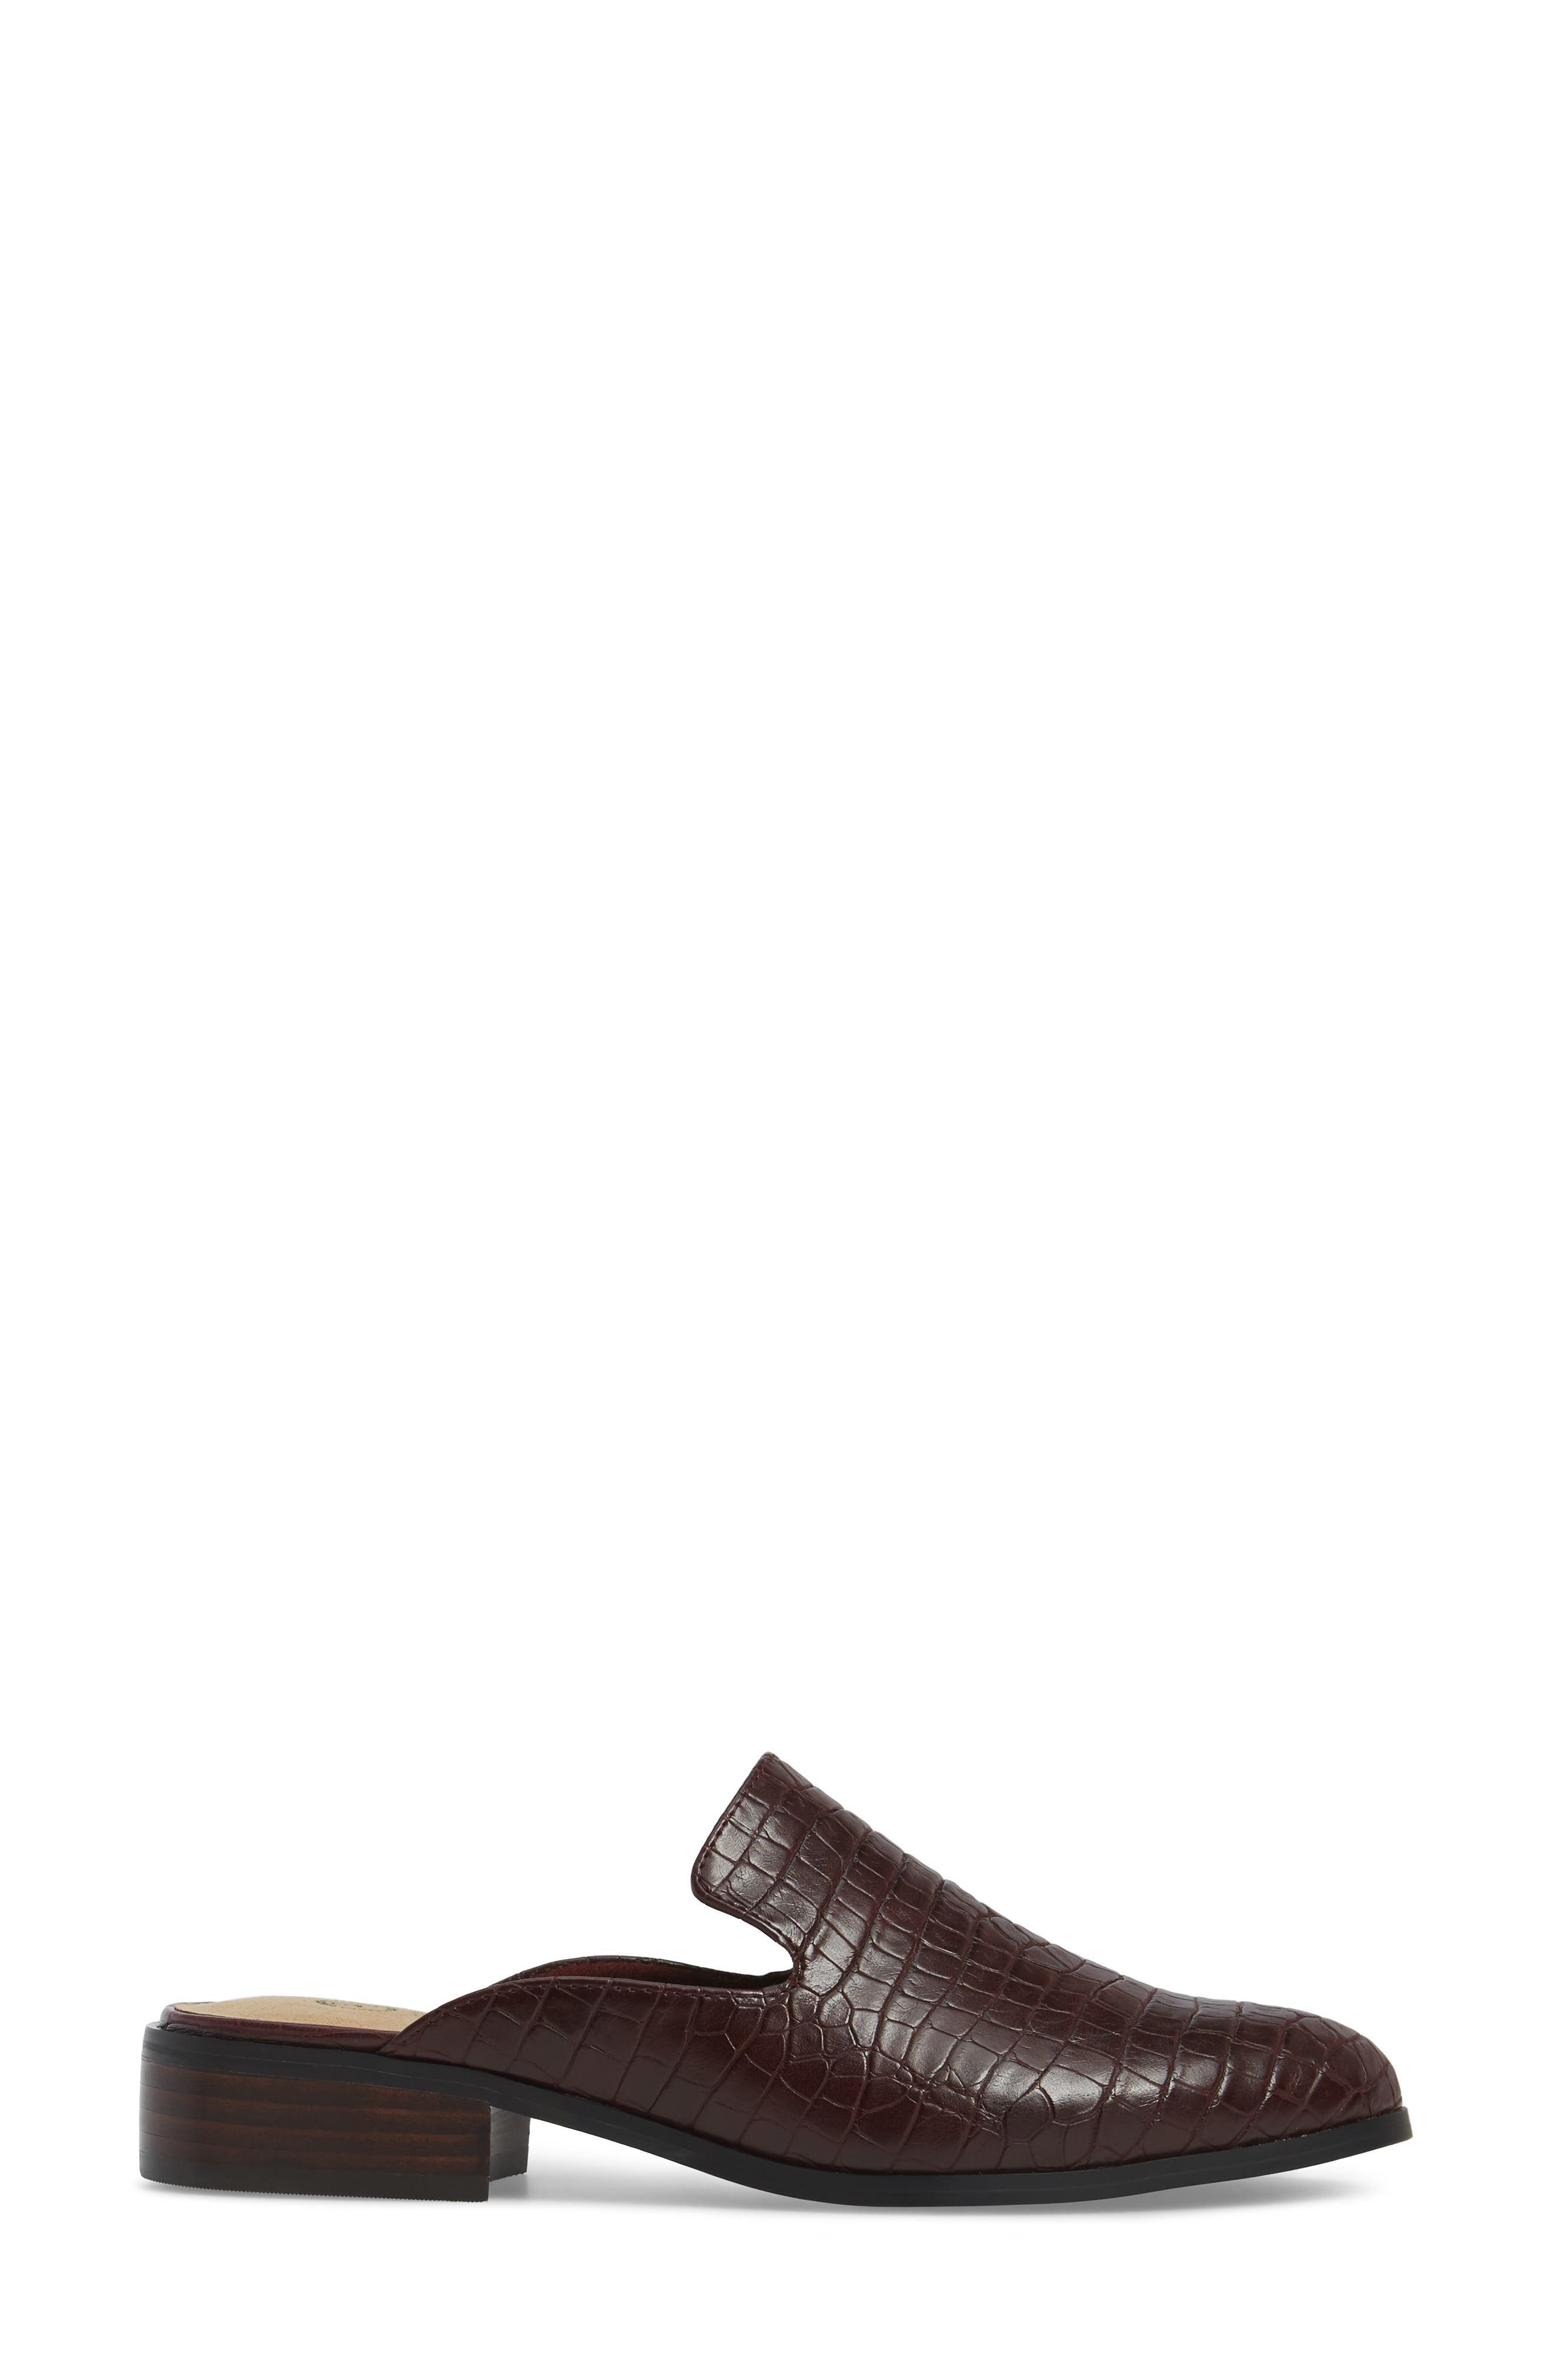 Briar II Loafer Mule,                             Alternate thumbnail 3, color,                             Burgundy Faux Crocodile